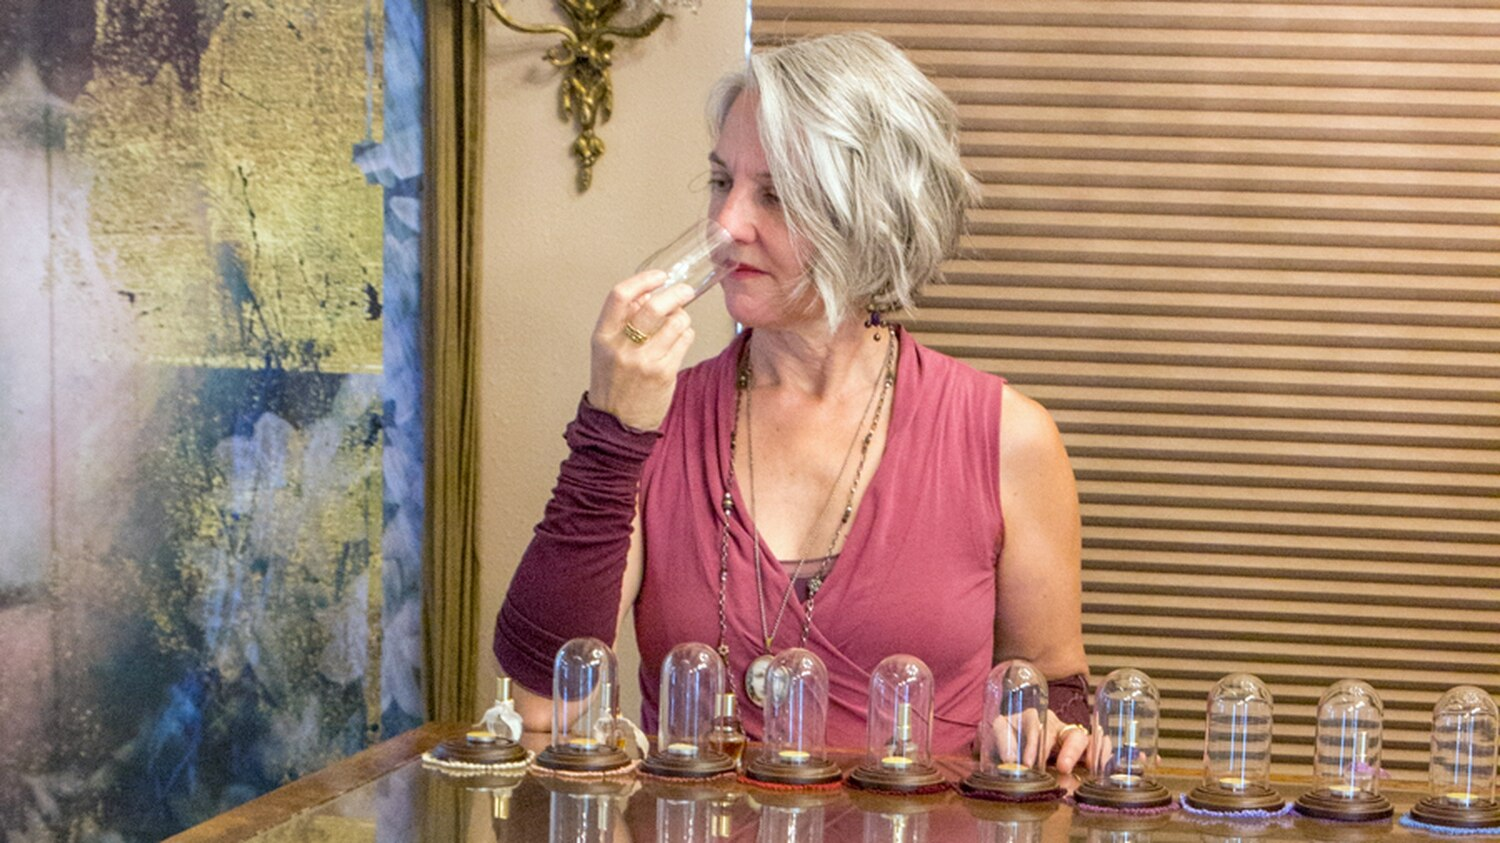 Scents of Art and Alchemy | News | Santa Fe Reporter